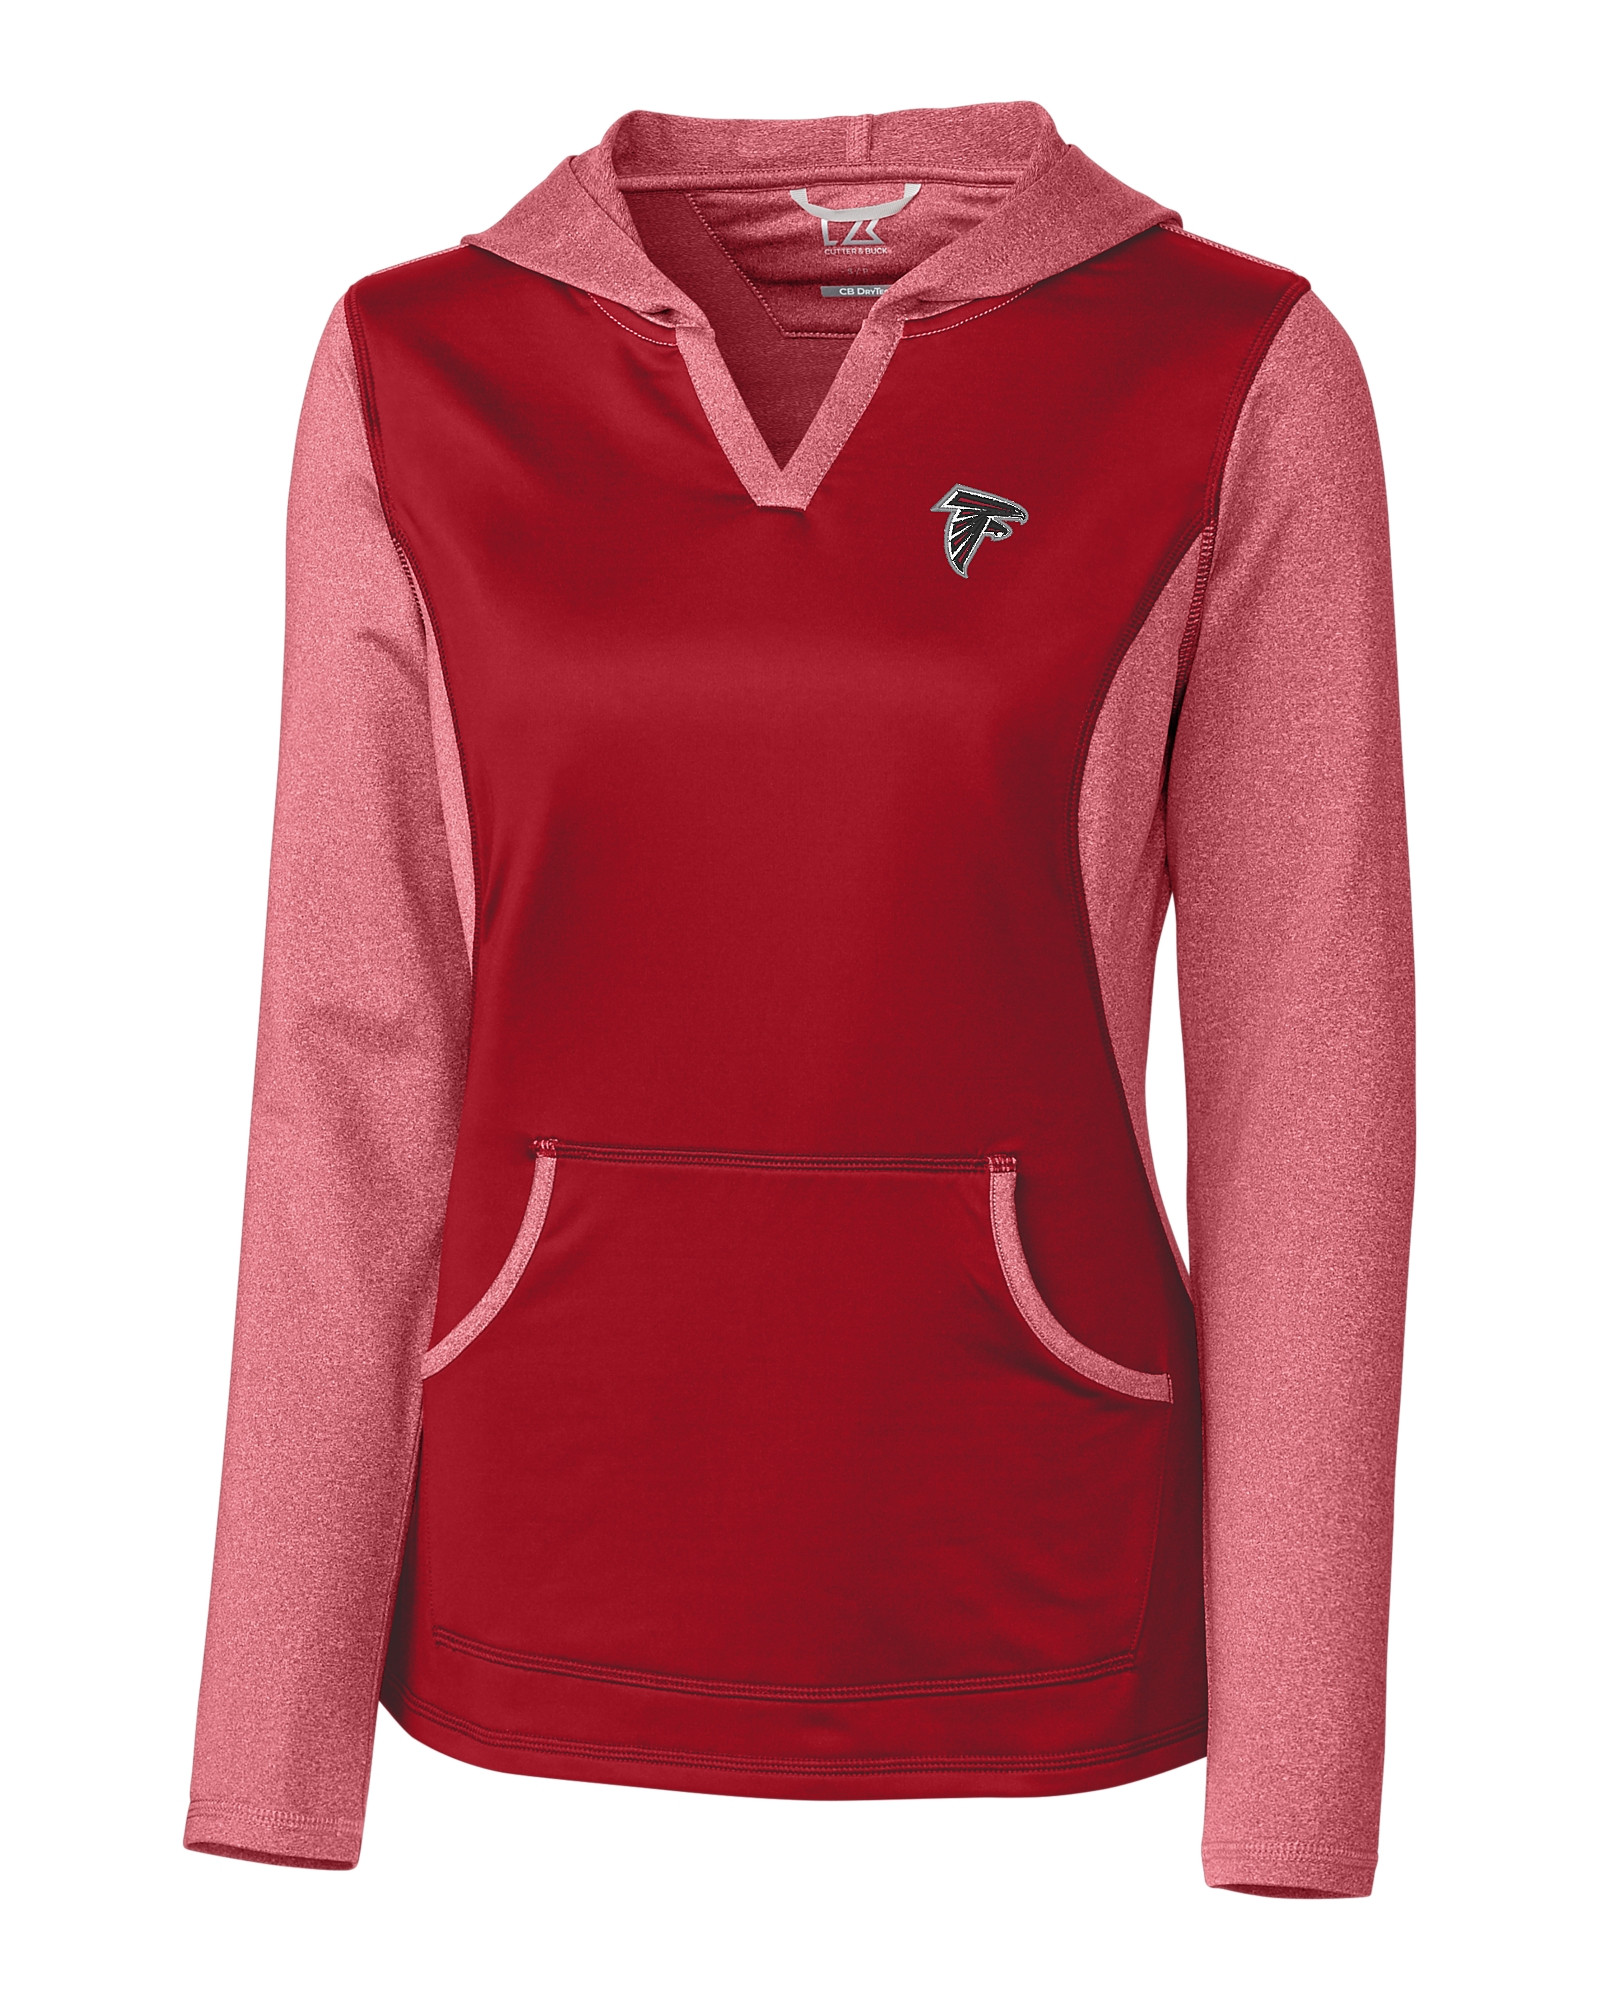 Atlanta Falcons Ladies' Tackle Hoodie Cutter & Buck  hot sale